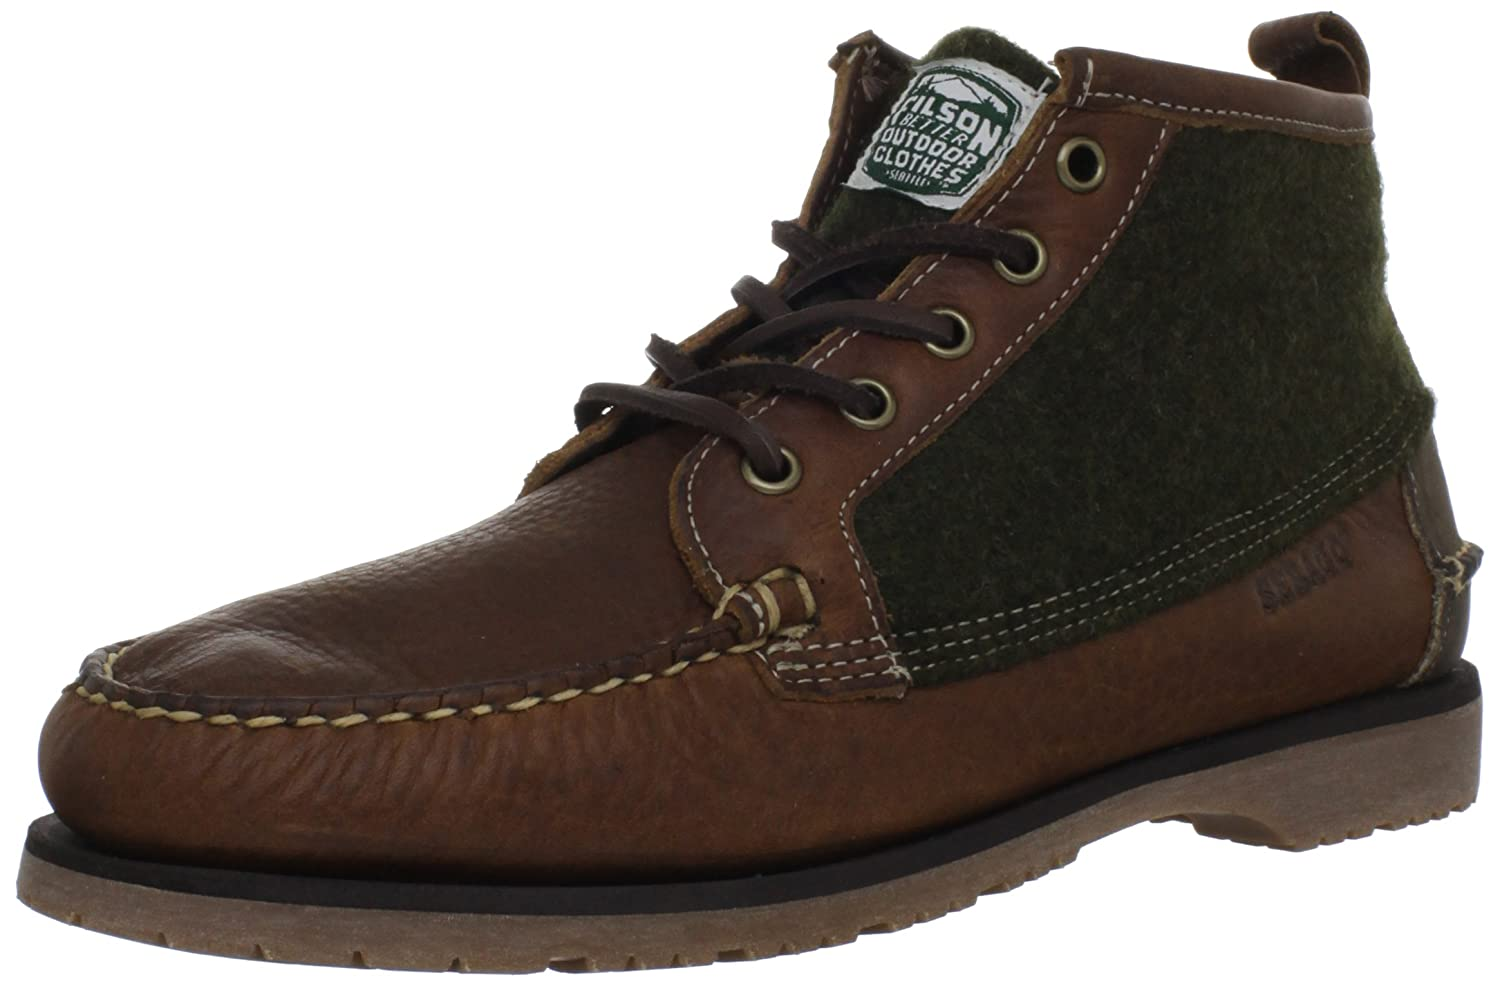 Sebago Men's Knight Boot advise